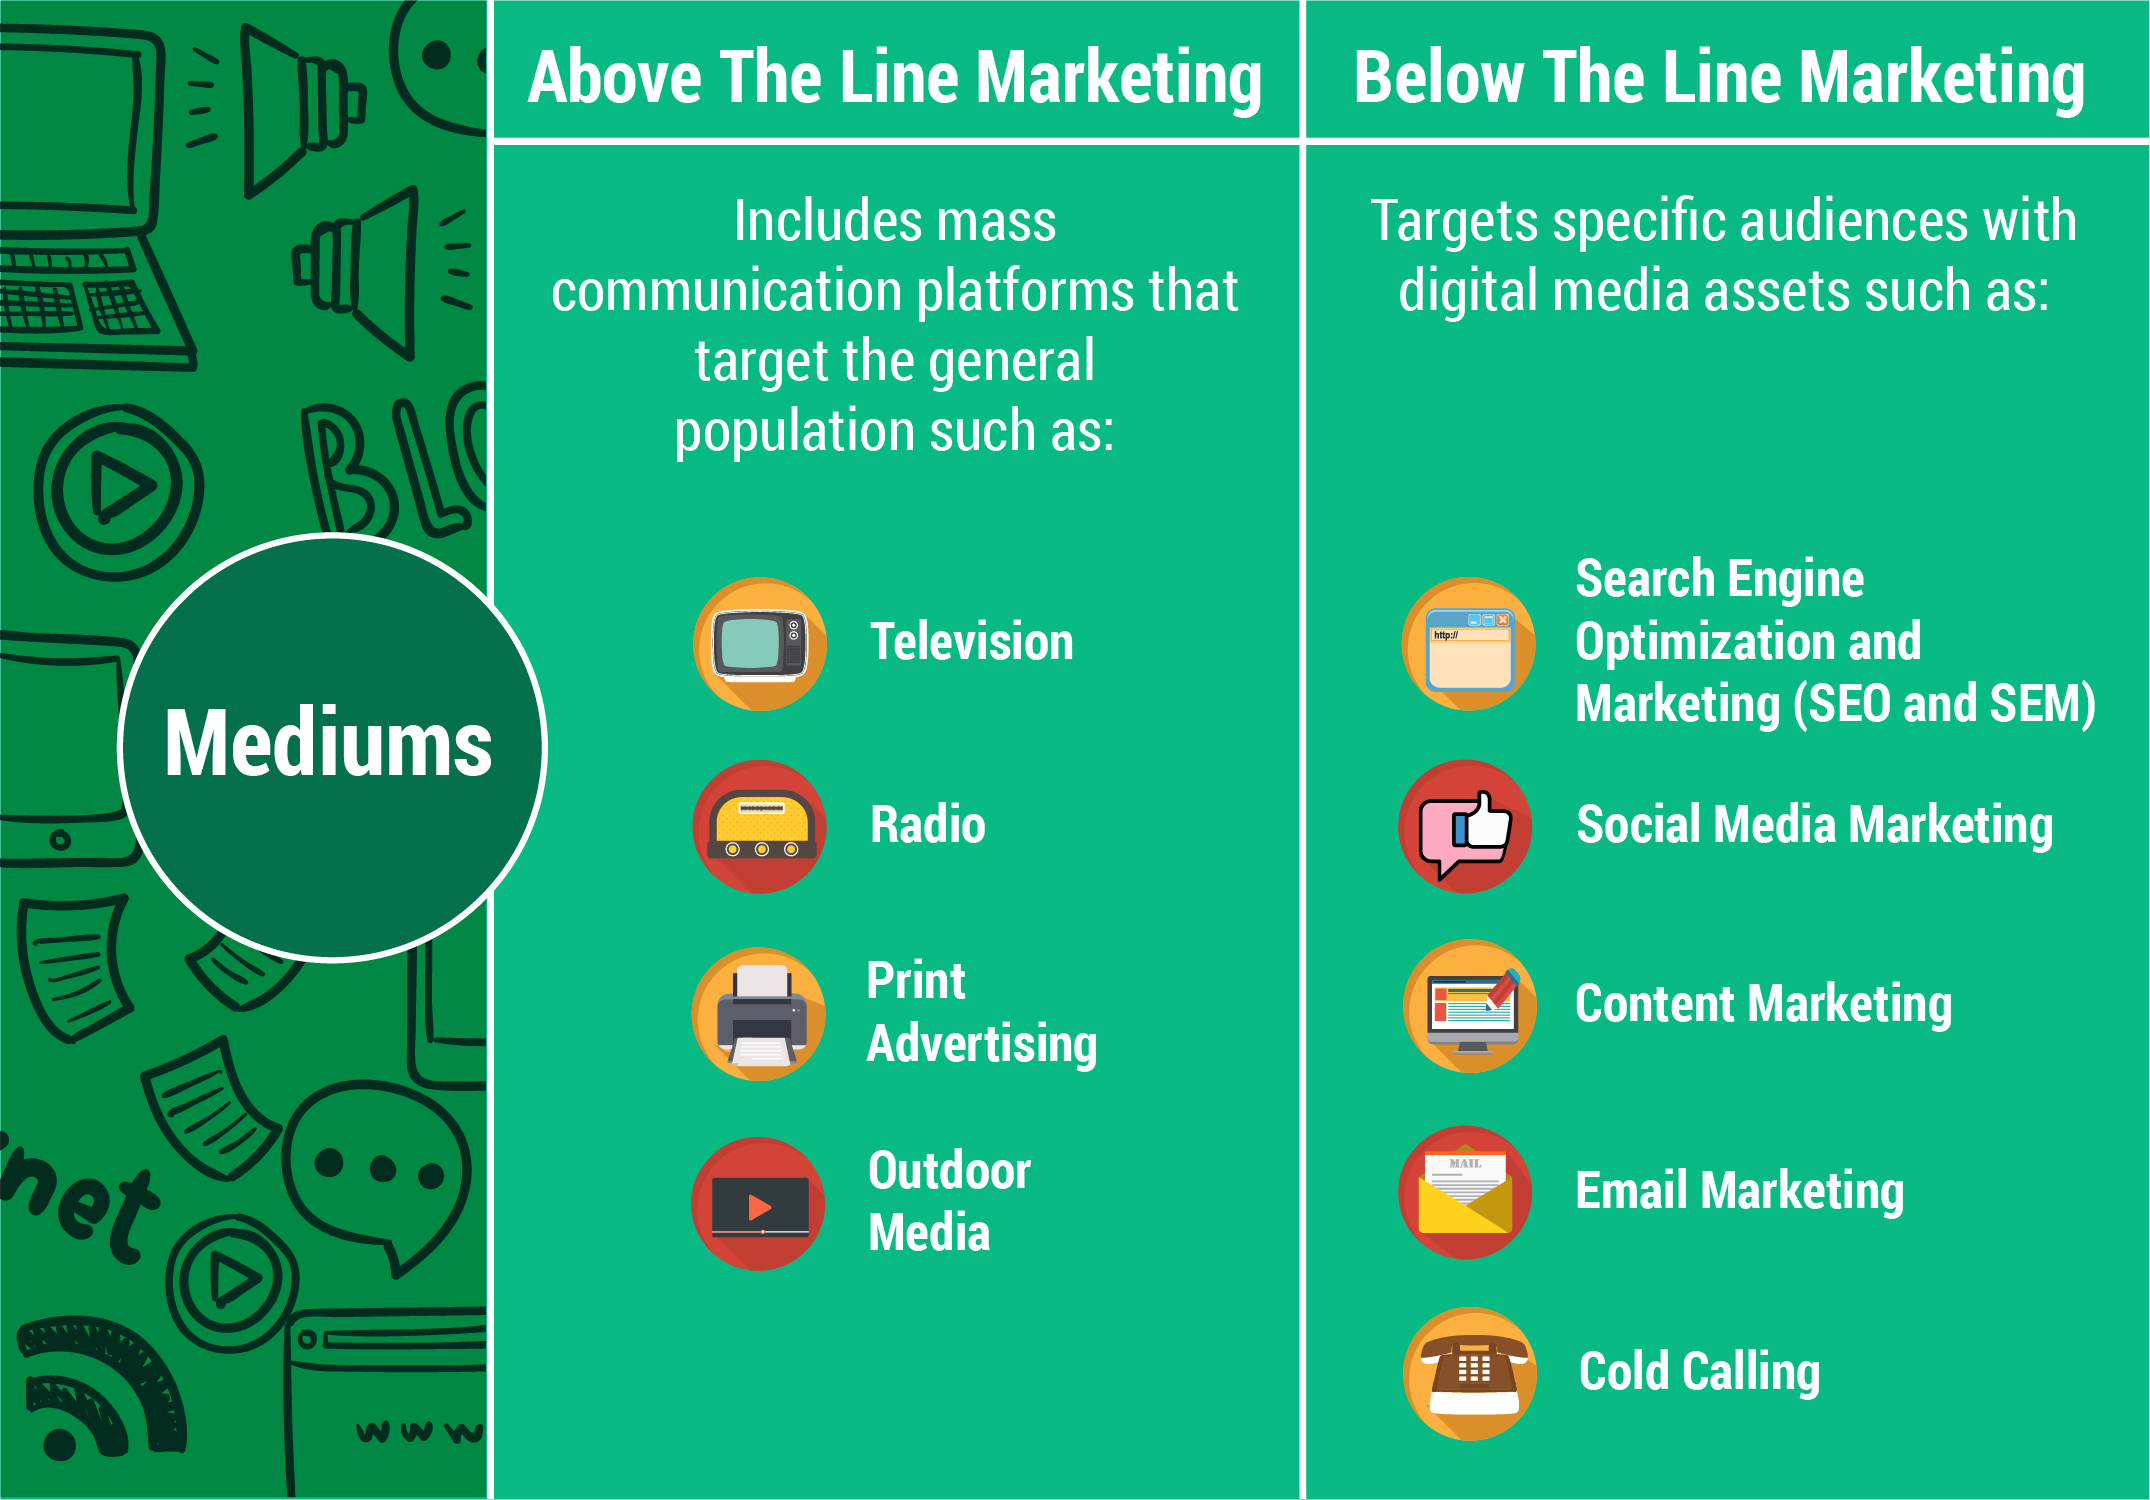 Above the line and below the line marketing